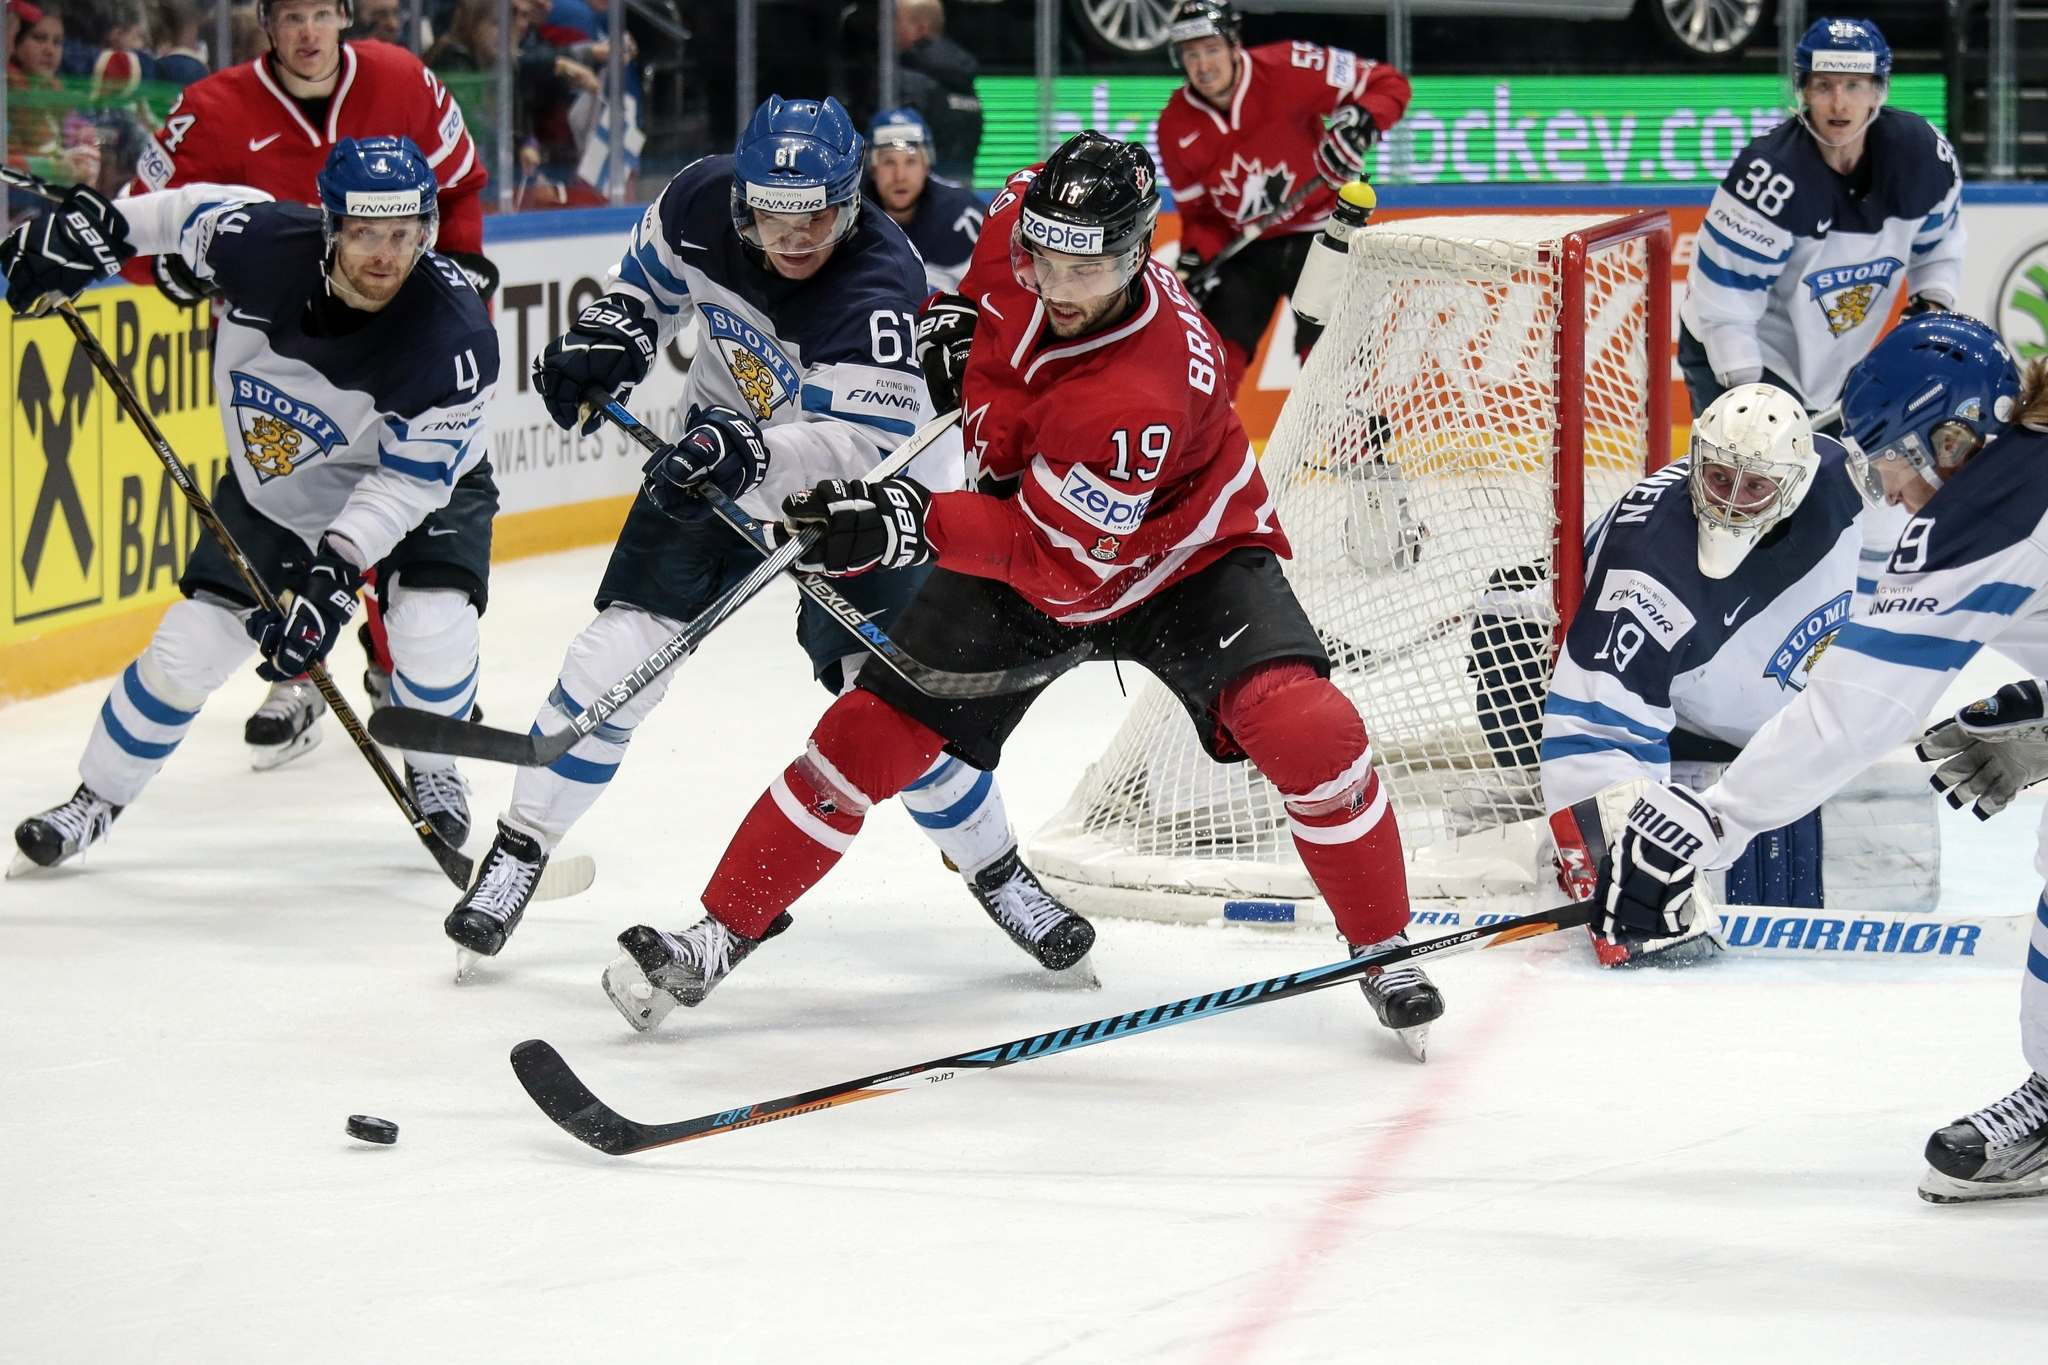 Finland's Aleksander Barkov (second from left) and Patrik Laine (right) battle for the puck with during the Ice Hockey World Championships final in 2016. The two have openly traded barbs since the NHL Global Series was announced in January, yet the admiration comes through loud and clear. (Pavel Golovkin / The Associated Press files)</p>